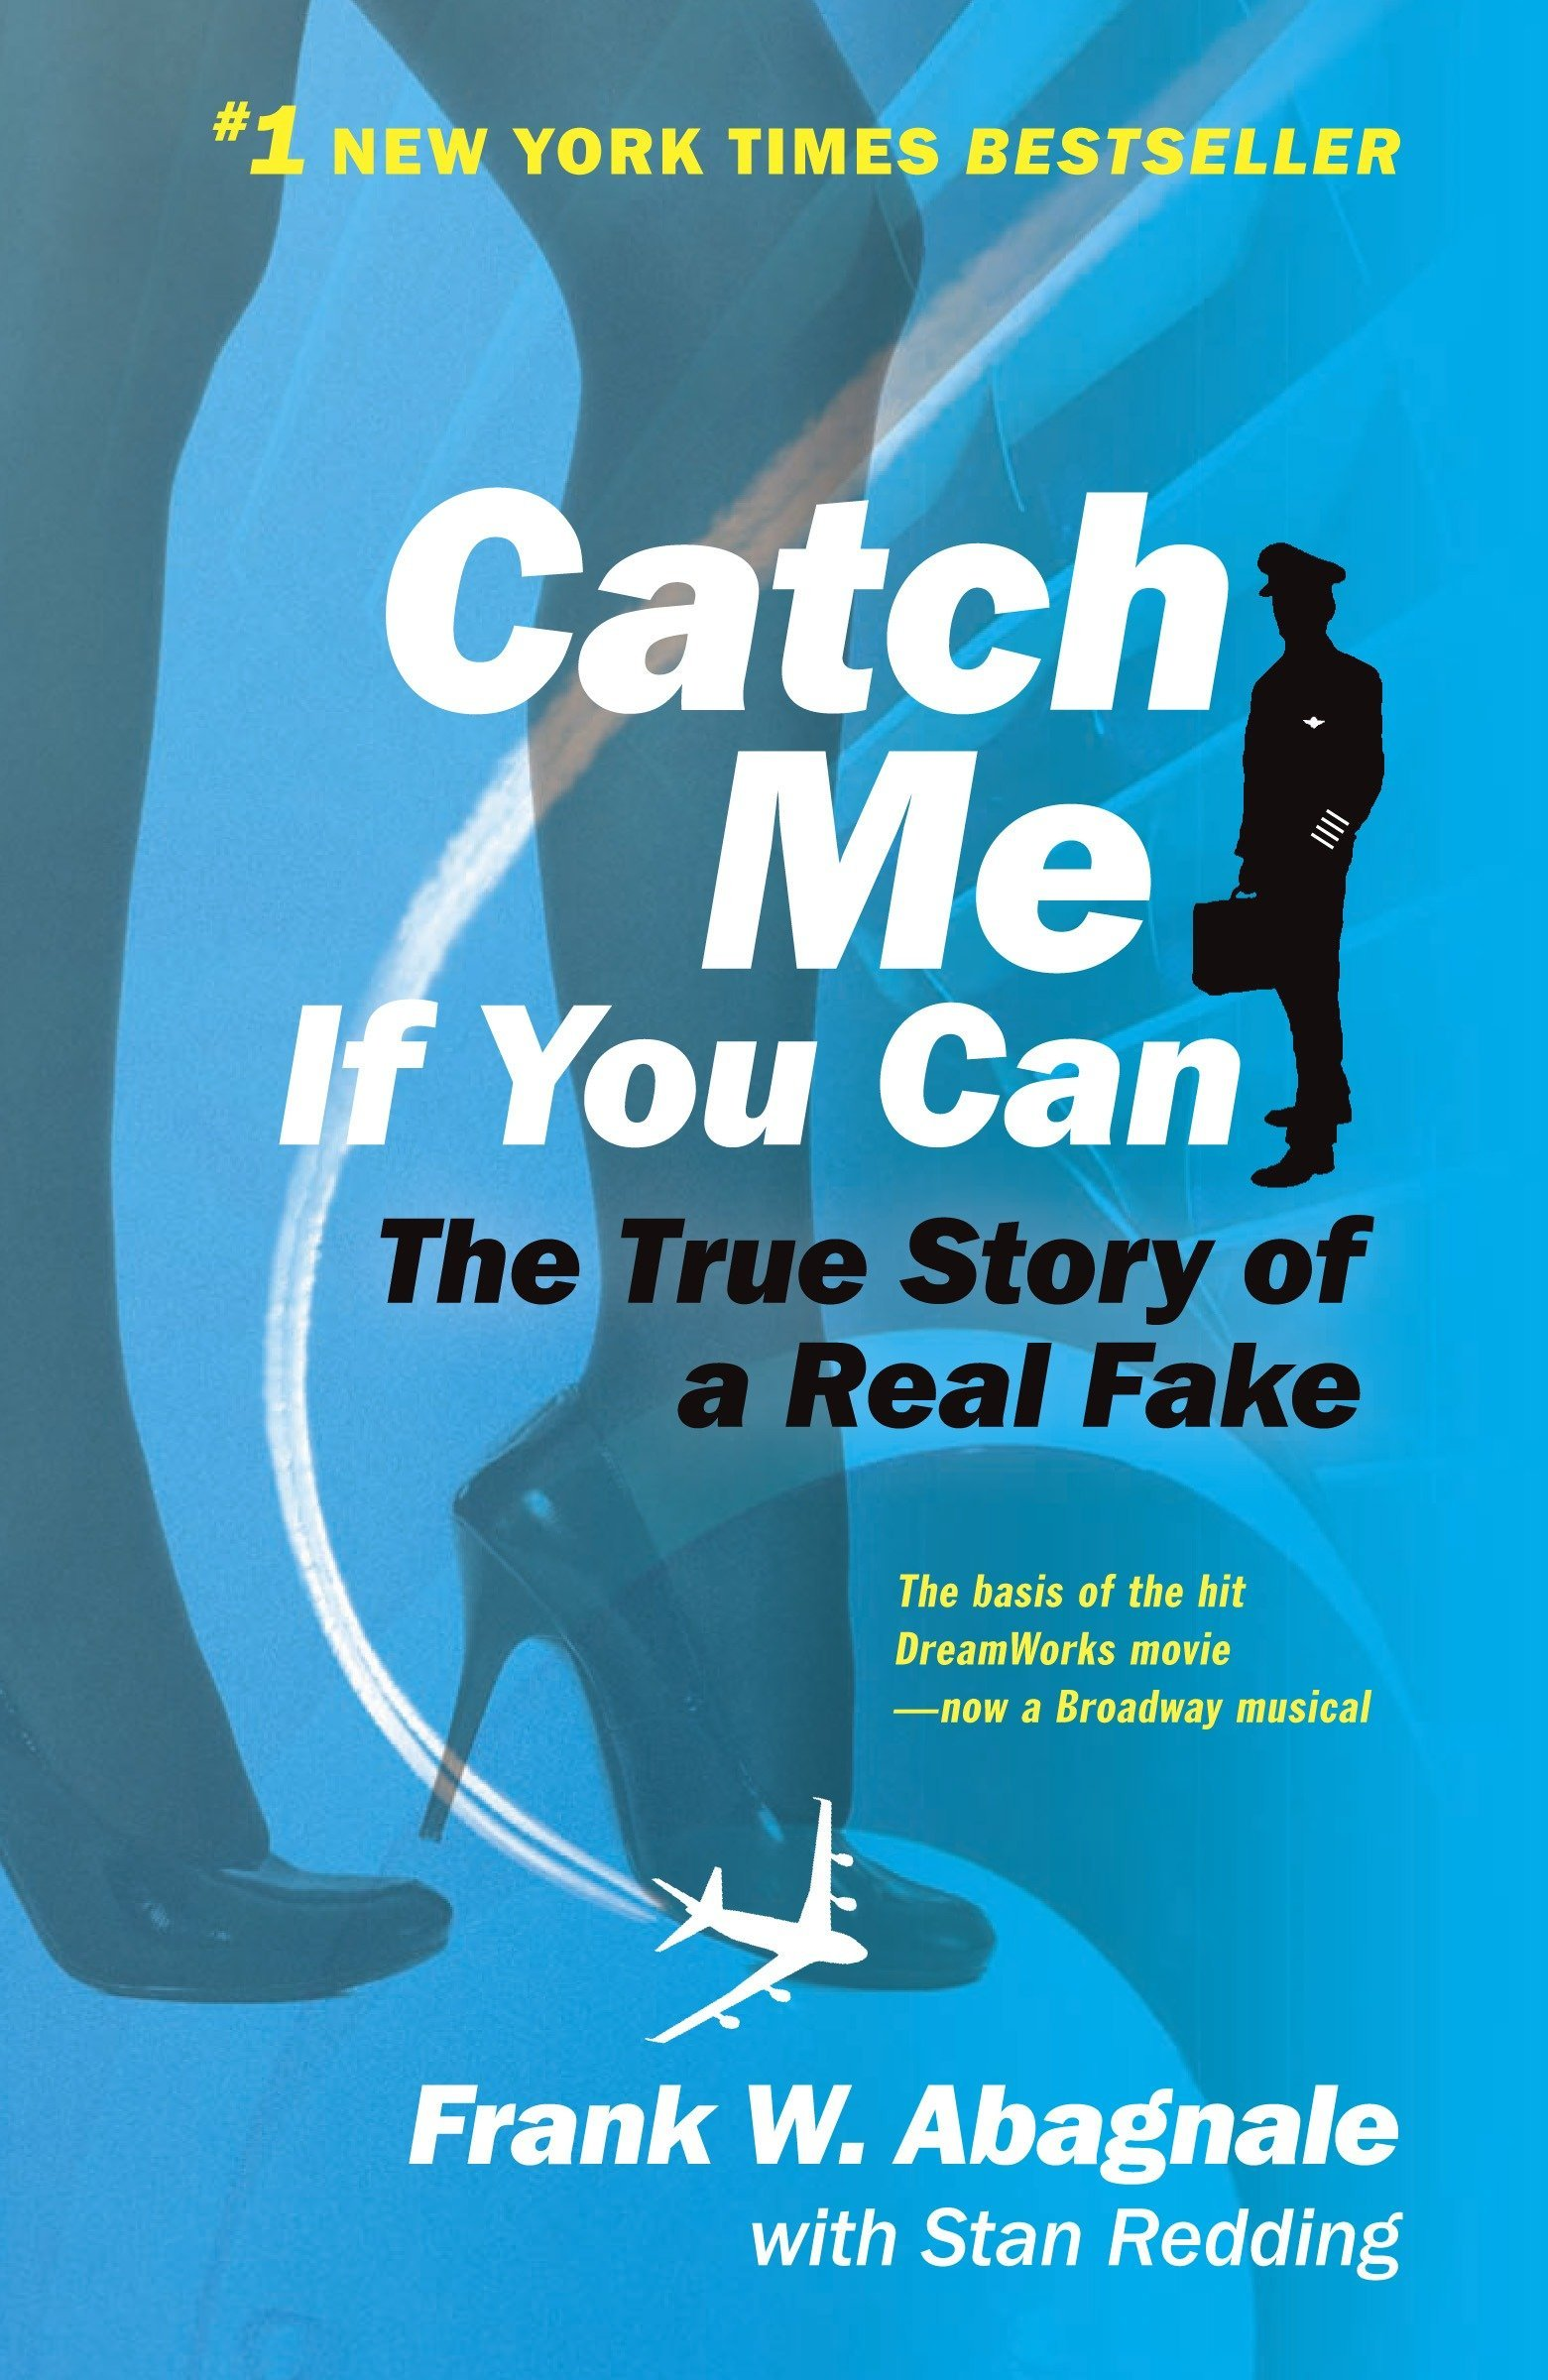 Amazon.fr - Catch Me If You Can  The True Story of a Real Fake - Frank W.  Abagnale, Stan Redding - Livres f1dbeae57478